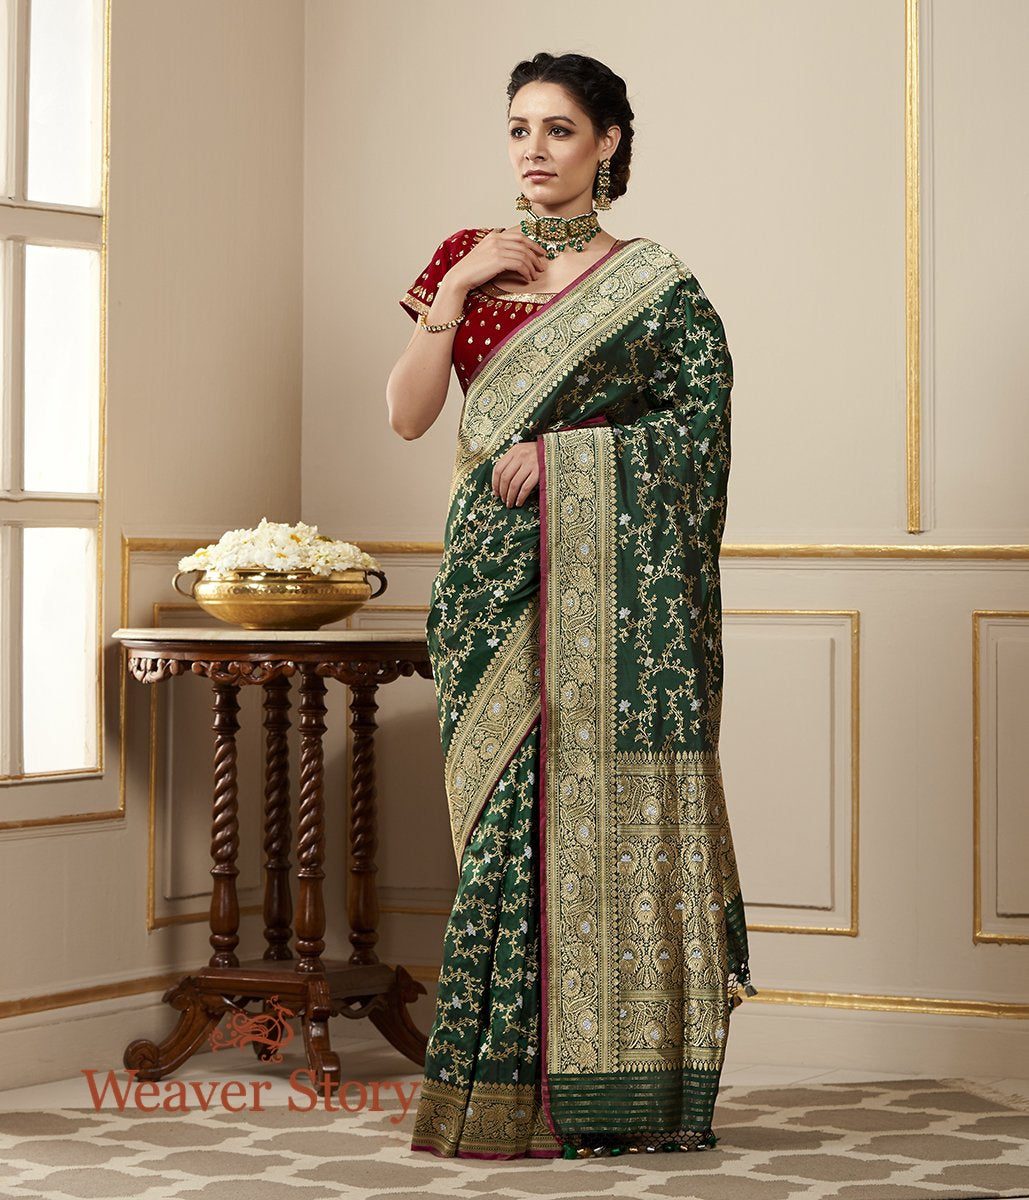 Handwoven Bottle Green Kadhwa Jangla Saree with Red Selvedge